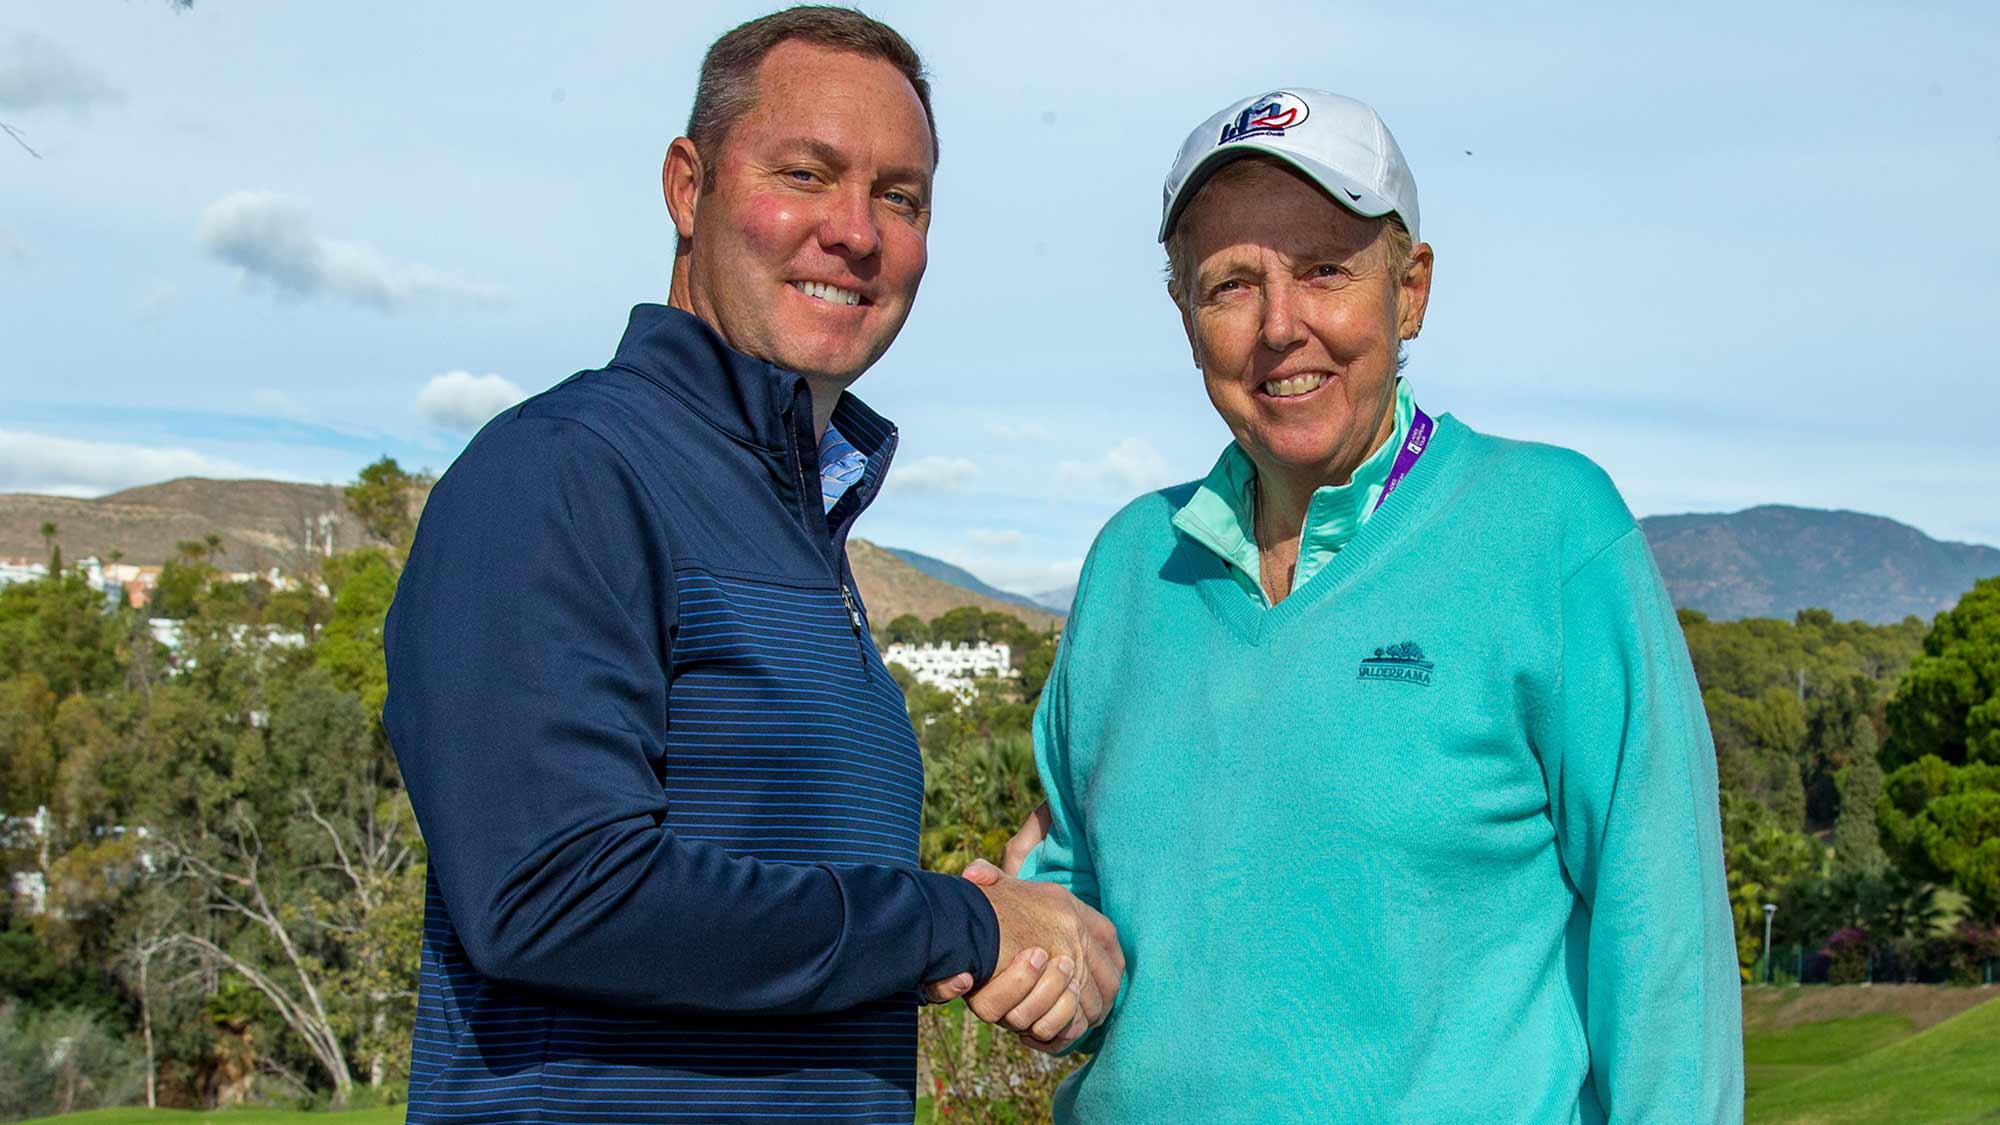 LPGA Commissioner Mike Whan and the Ladies European Tour's Board Chair Marta Figueras-Dotti shake hands on Tuesday following the LET's Annual Membership Meeting in Spain